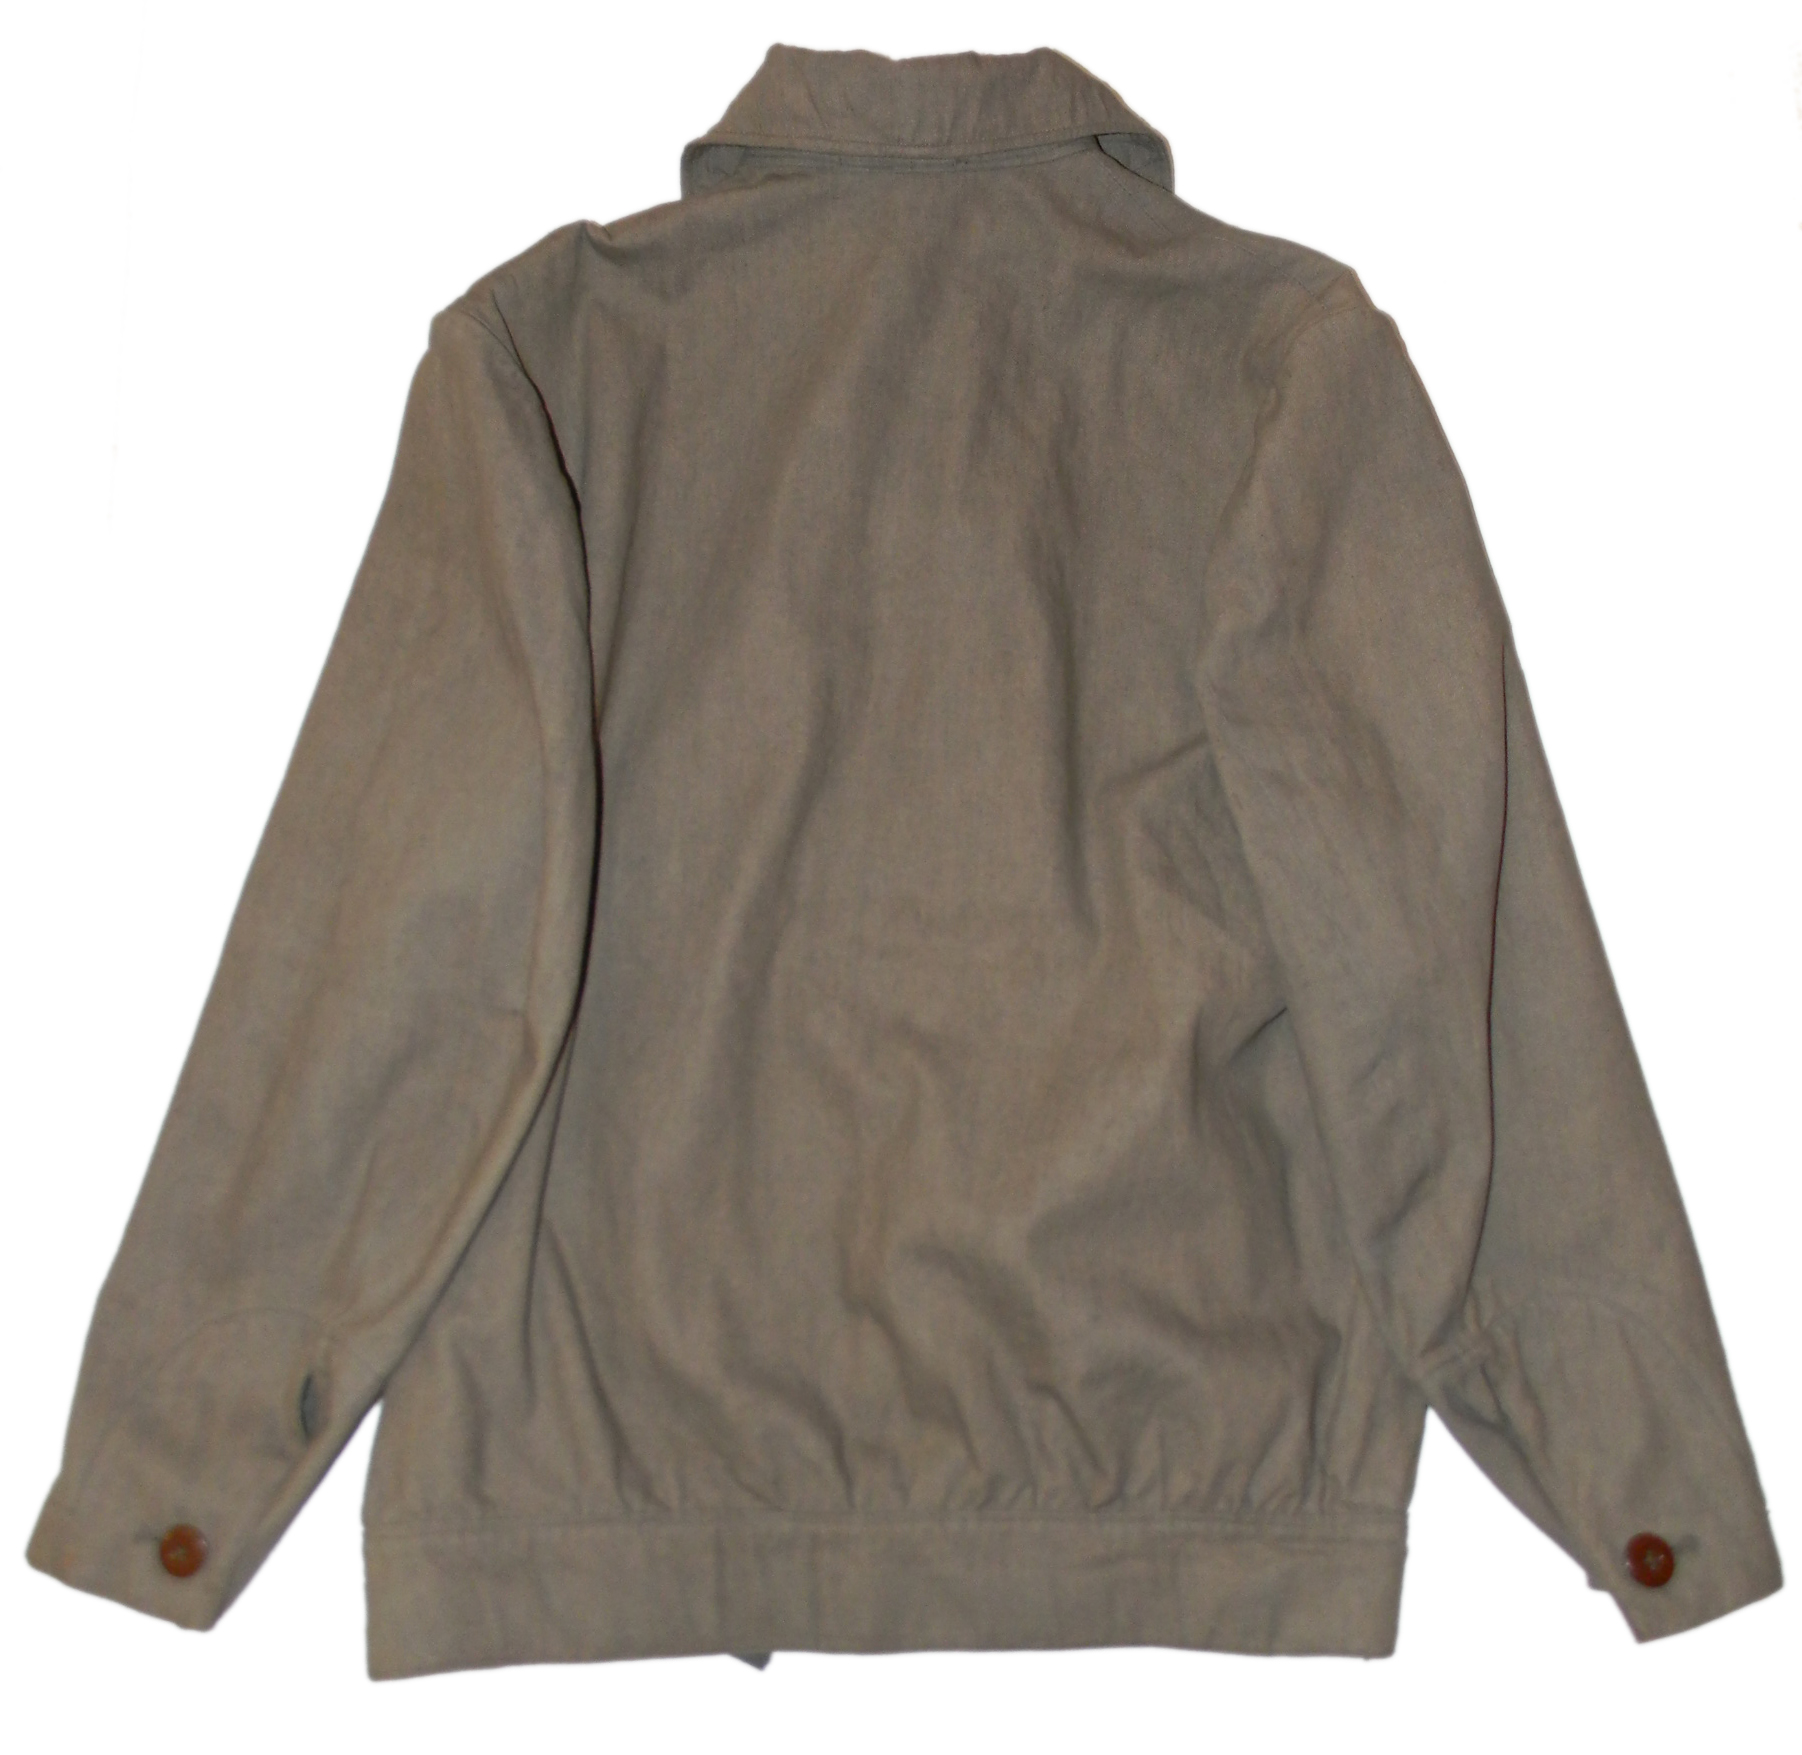 REPLICA LW Channel jacket